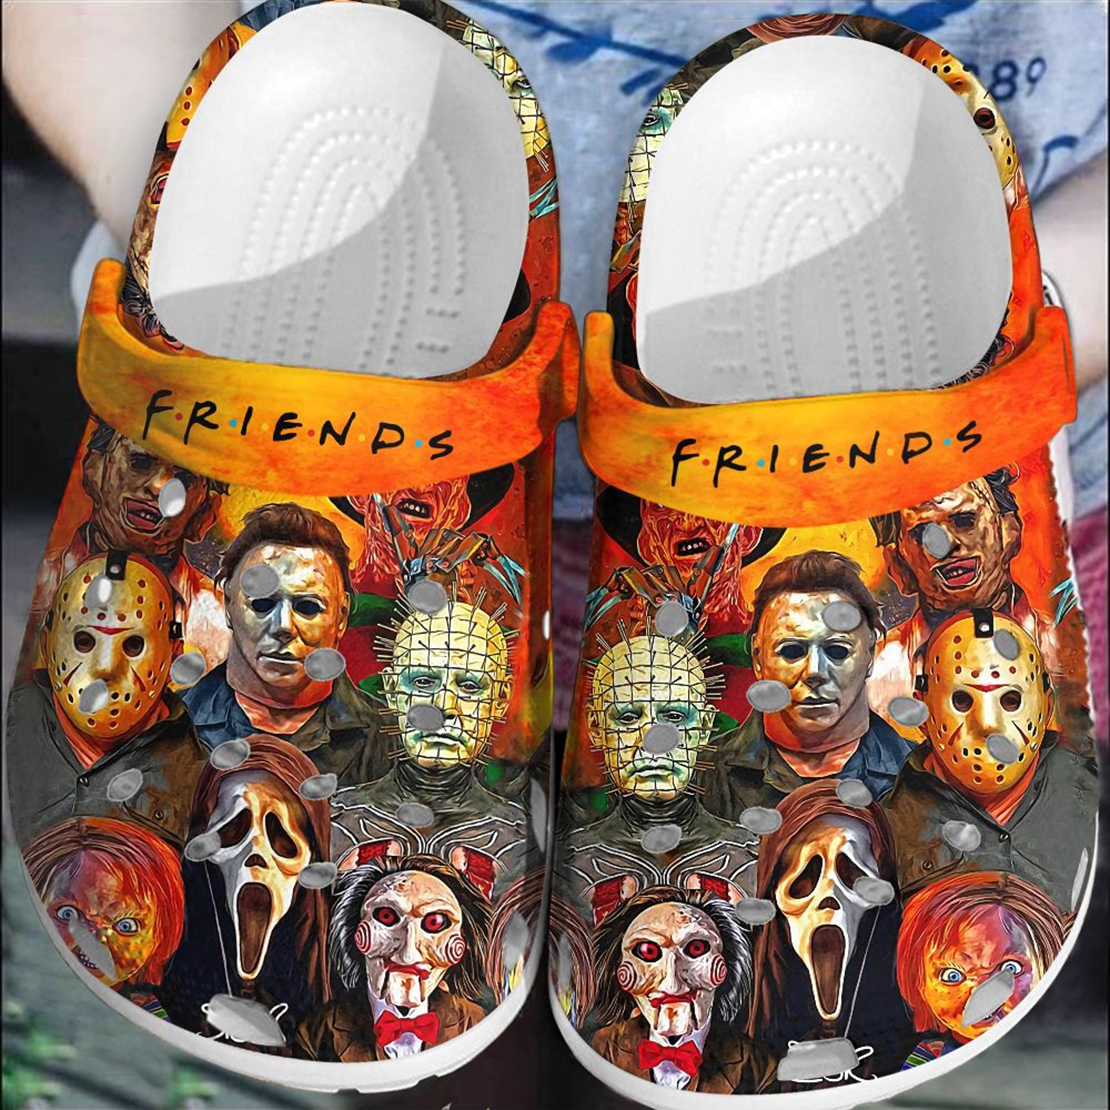 Friends show halloween horror characters crocband crocs shoes - Picture 2